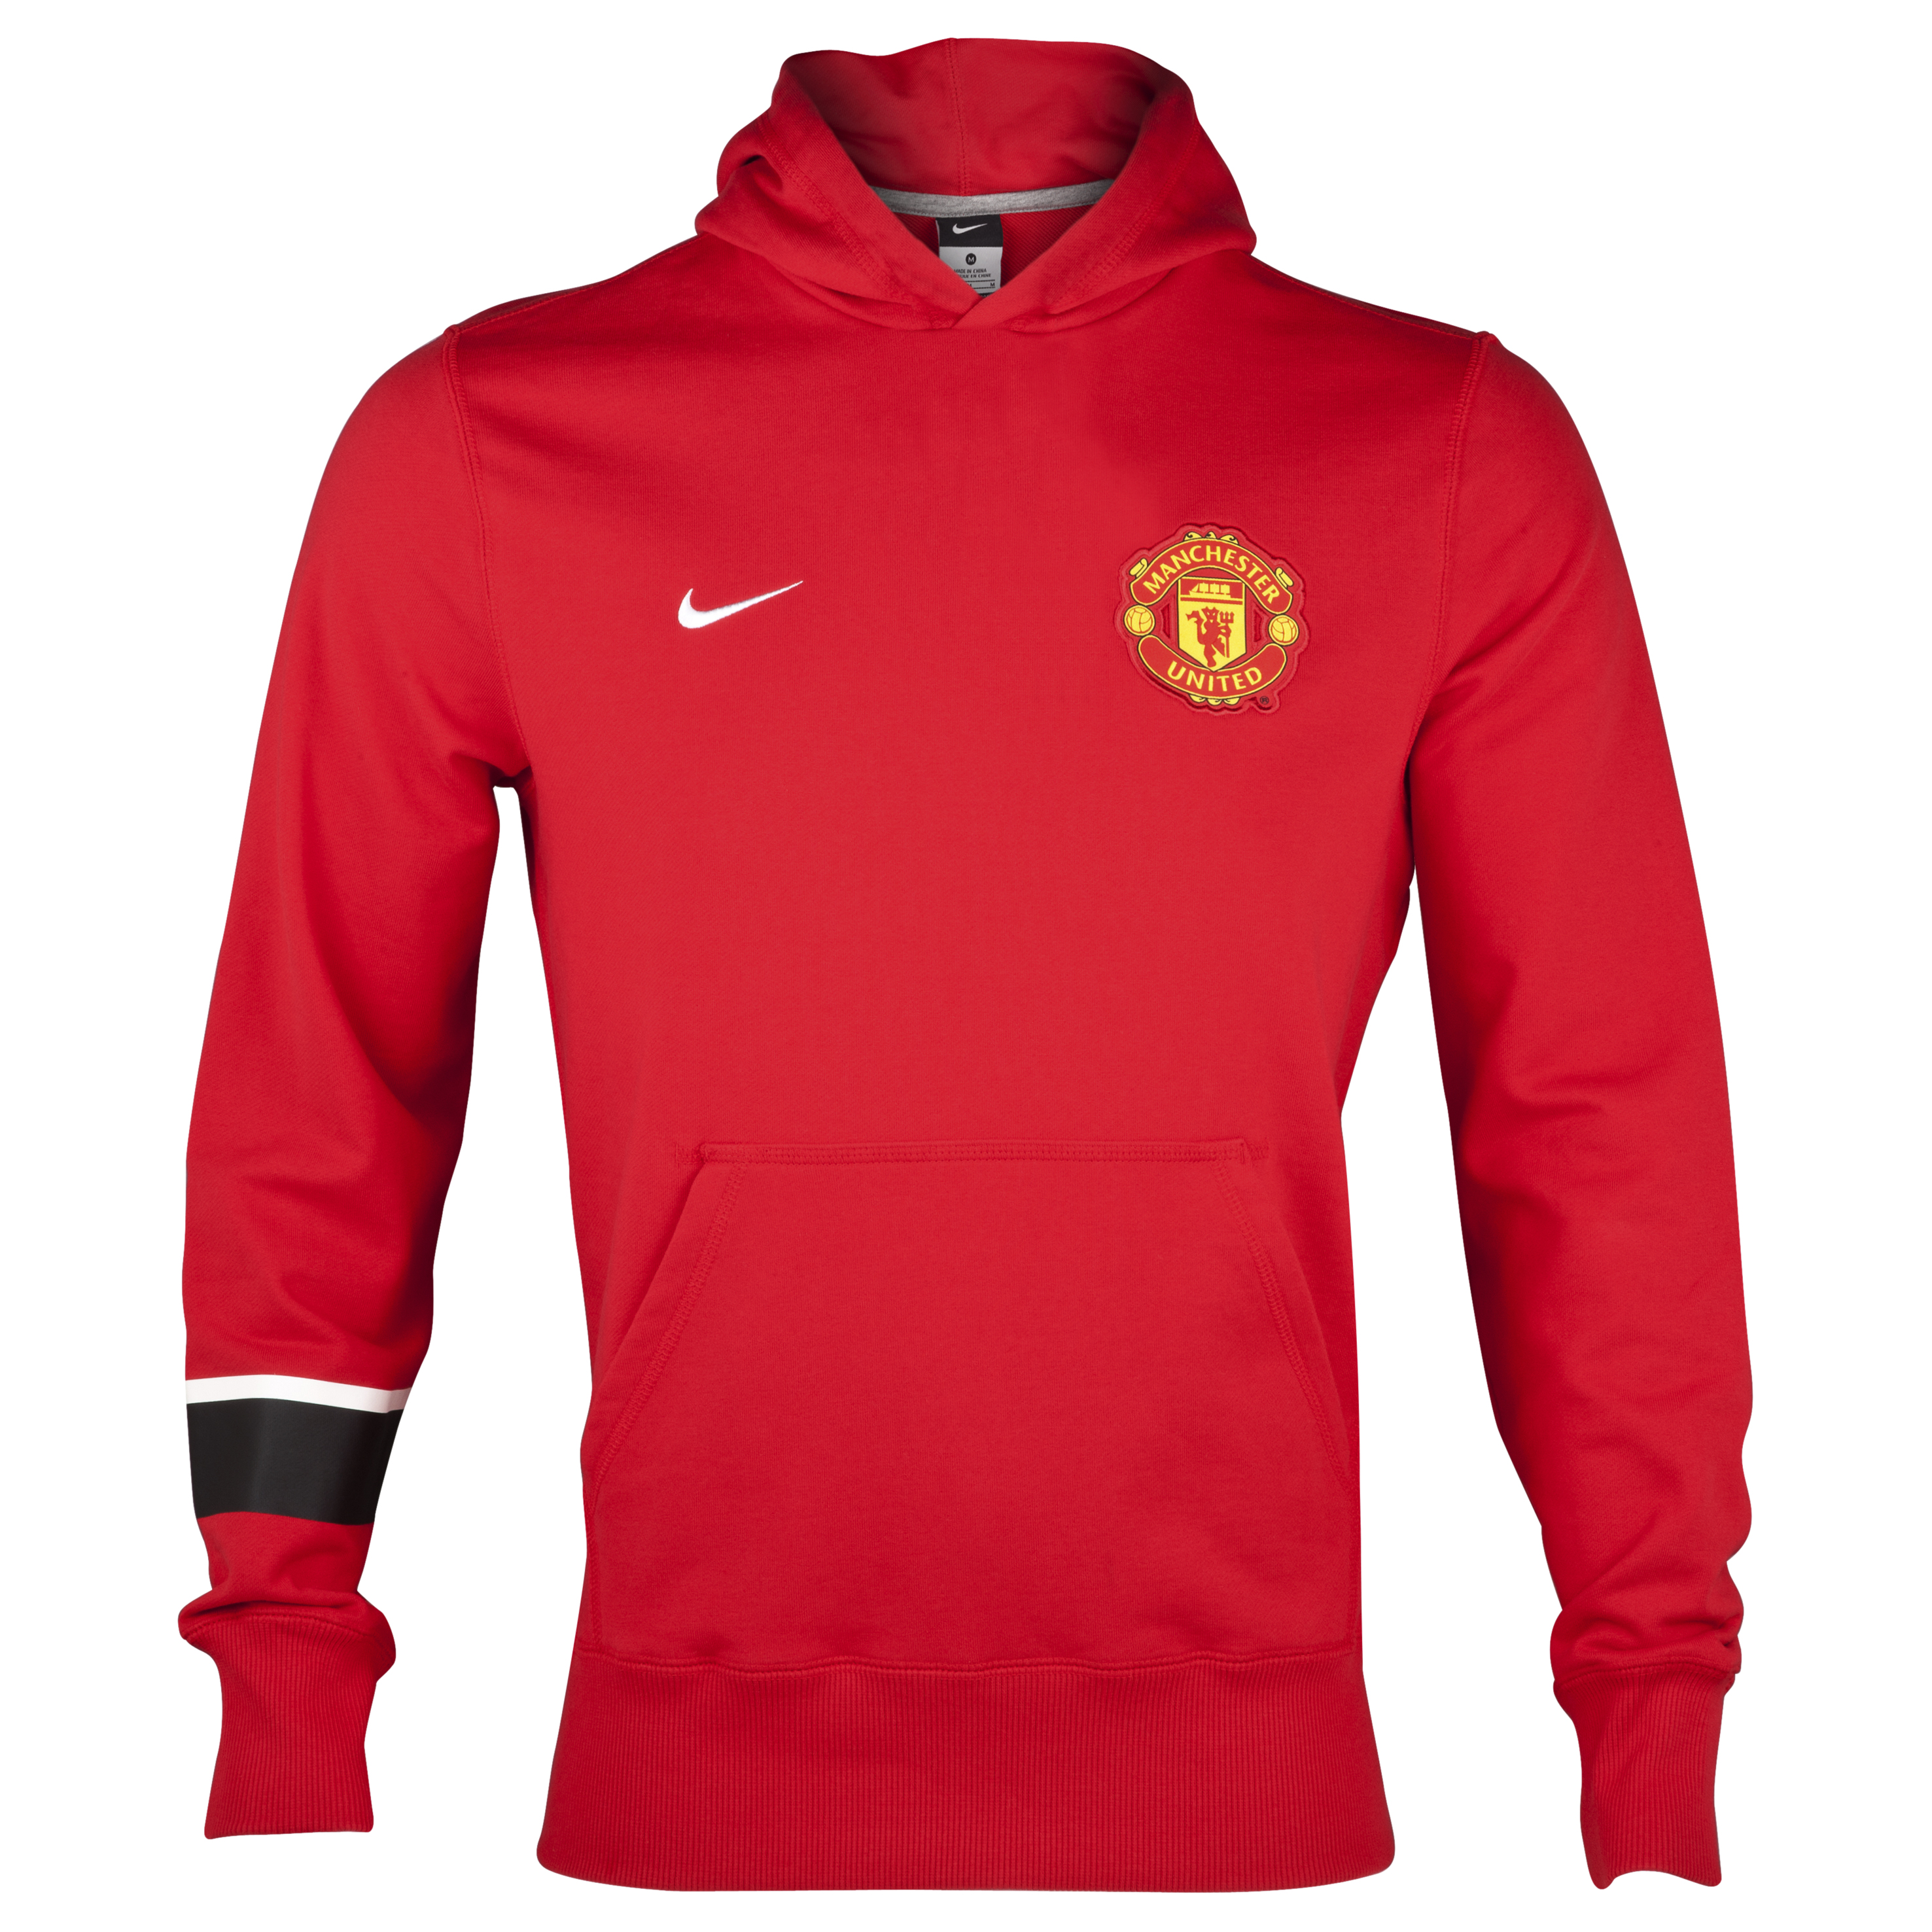 Manchester United Core Hoodie - Diablo Red/Diablo Red/White - Kids